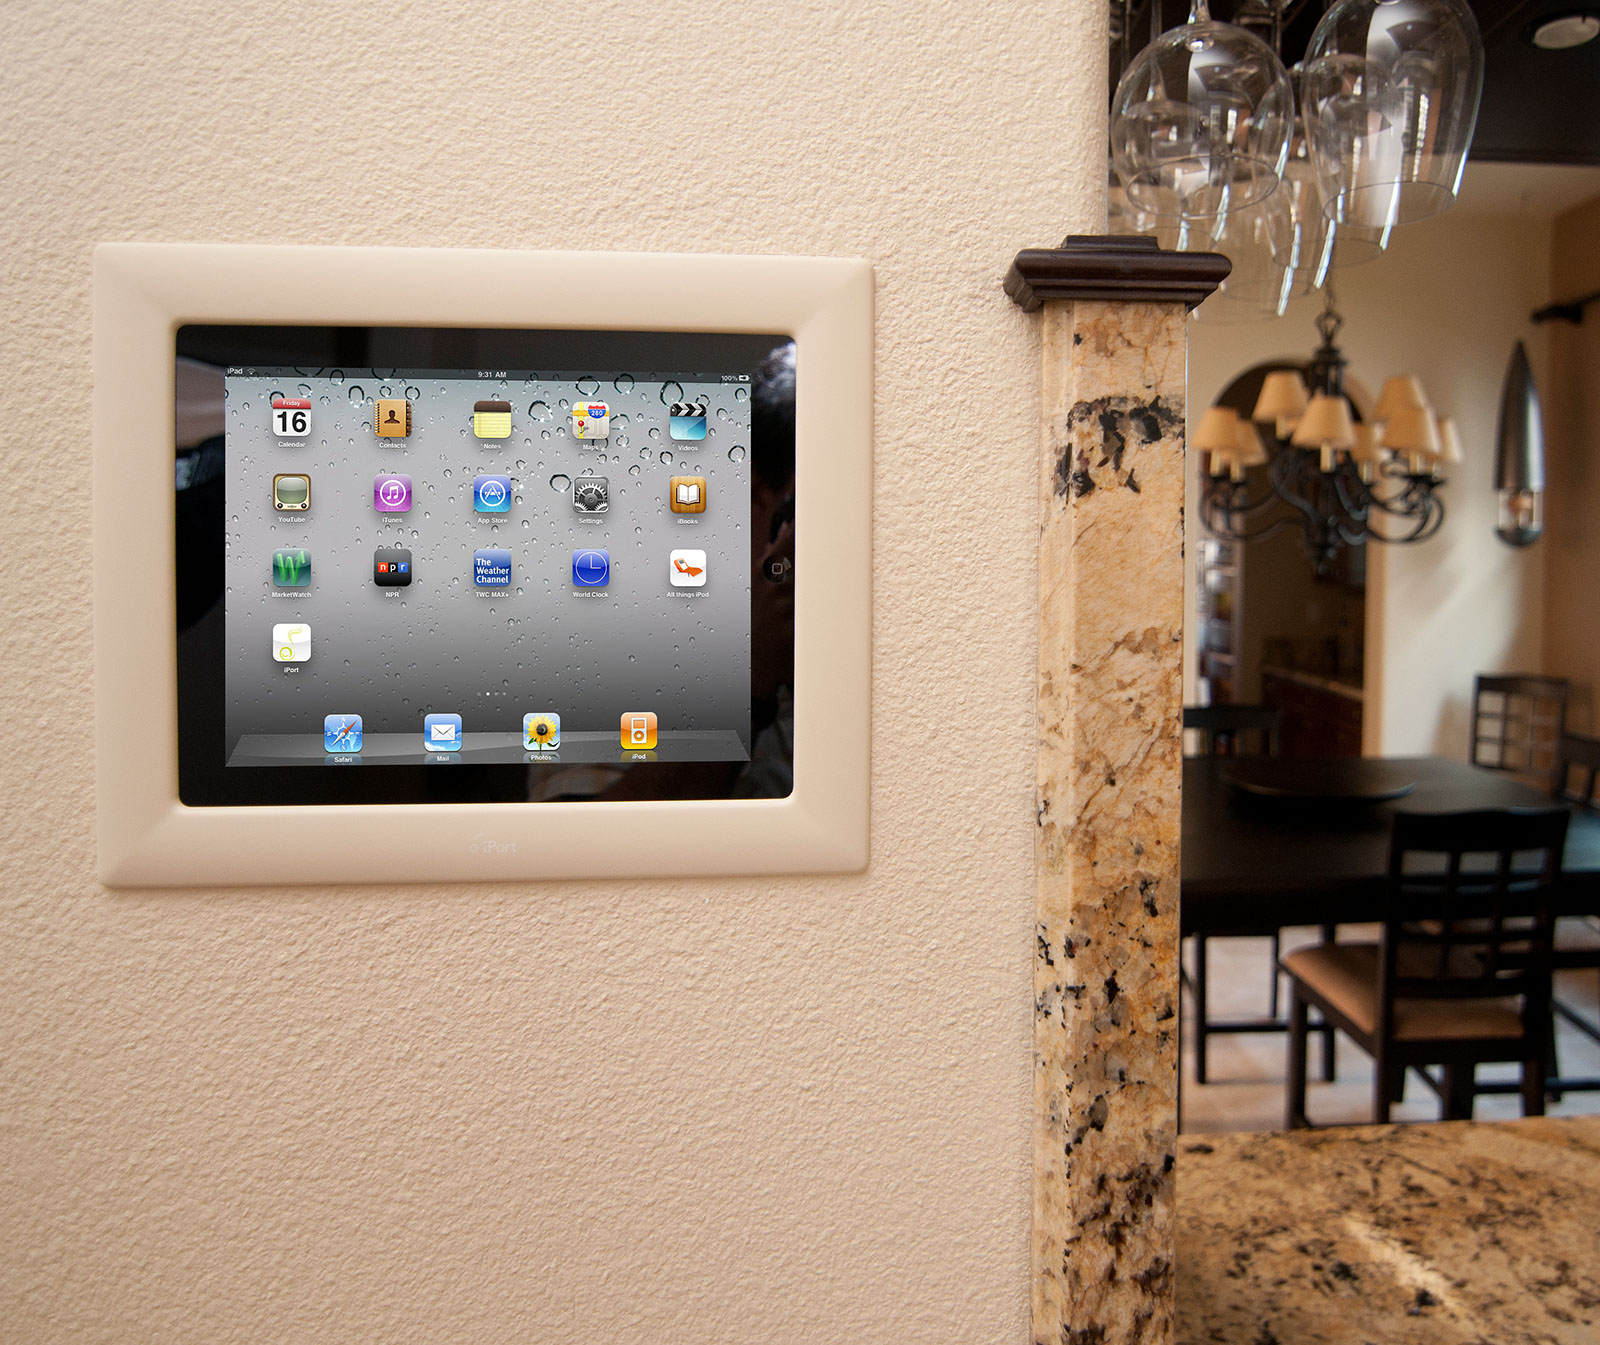 Tablet Wandhalterung Mit Ladefunktion Iport Turns Apple Ipad Into In-wall Touchscreen | Audioholics